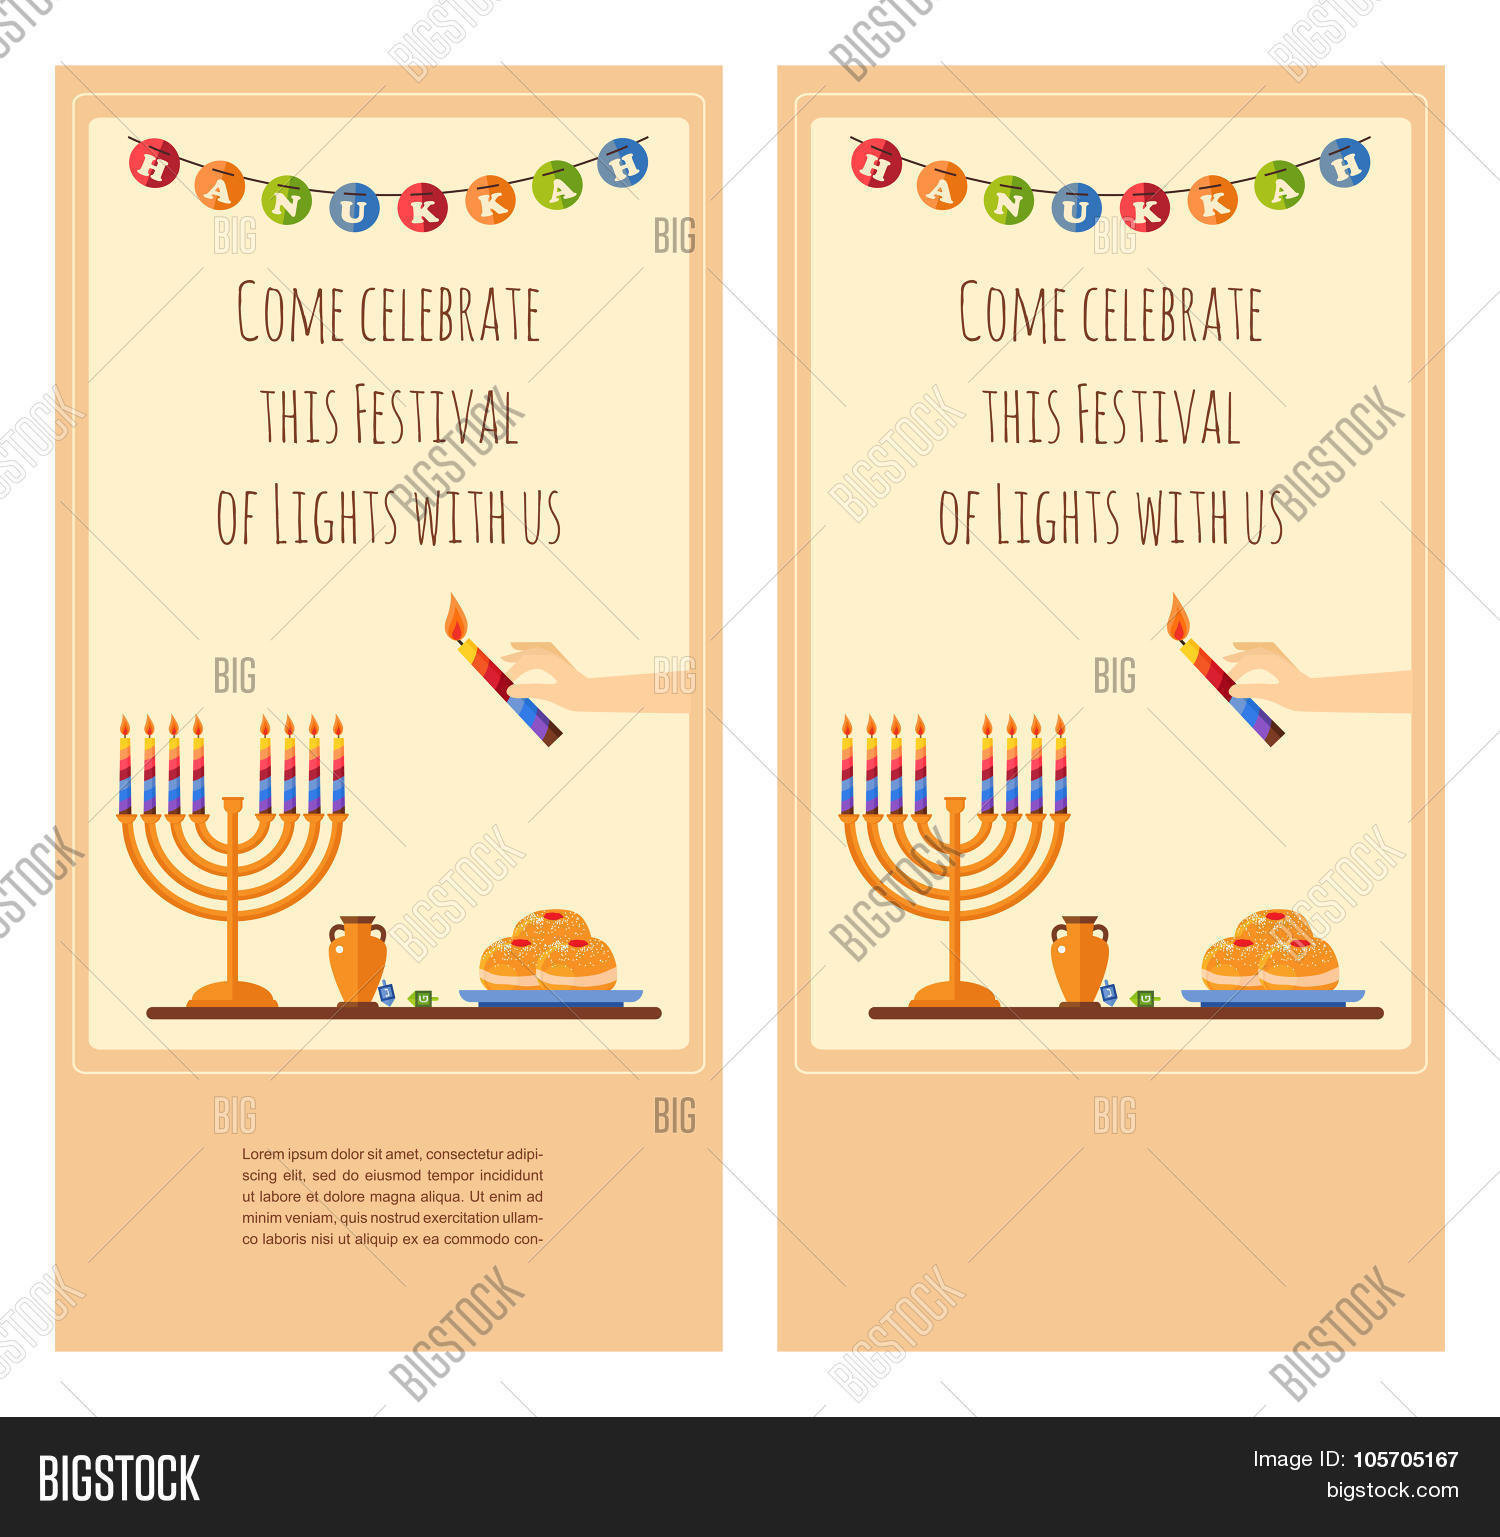 Happy hanukkah vector photo free trial bigstock happy hanukkah greeting card design snowing holiday template for party invitation hebrew letters o m4hsunfo